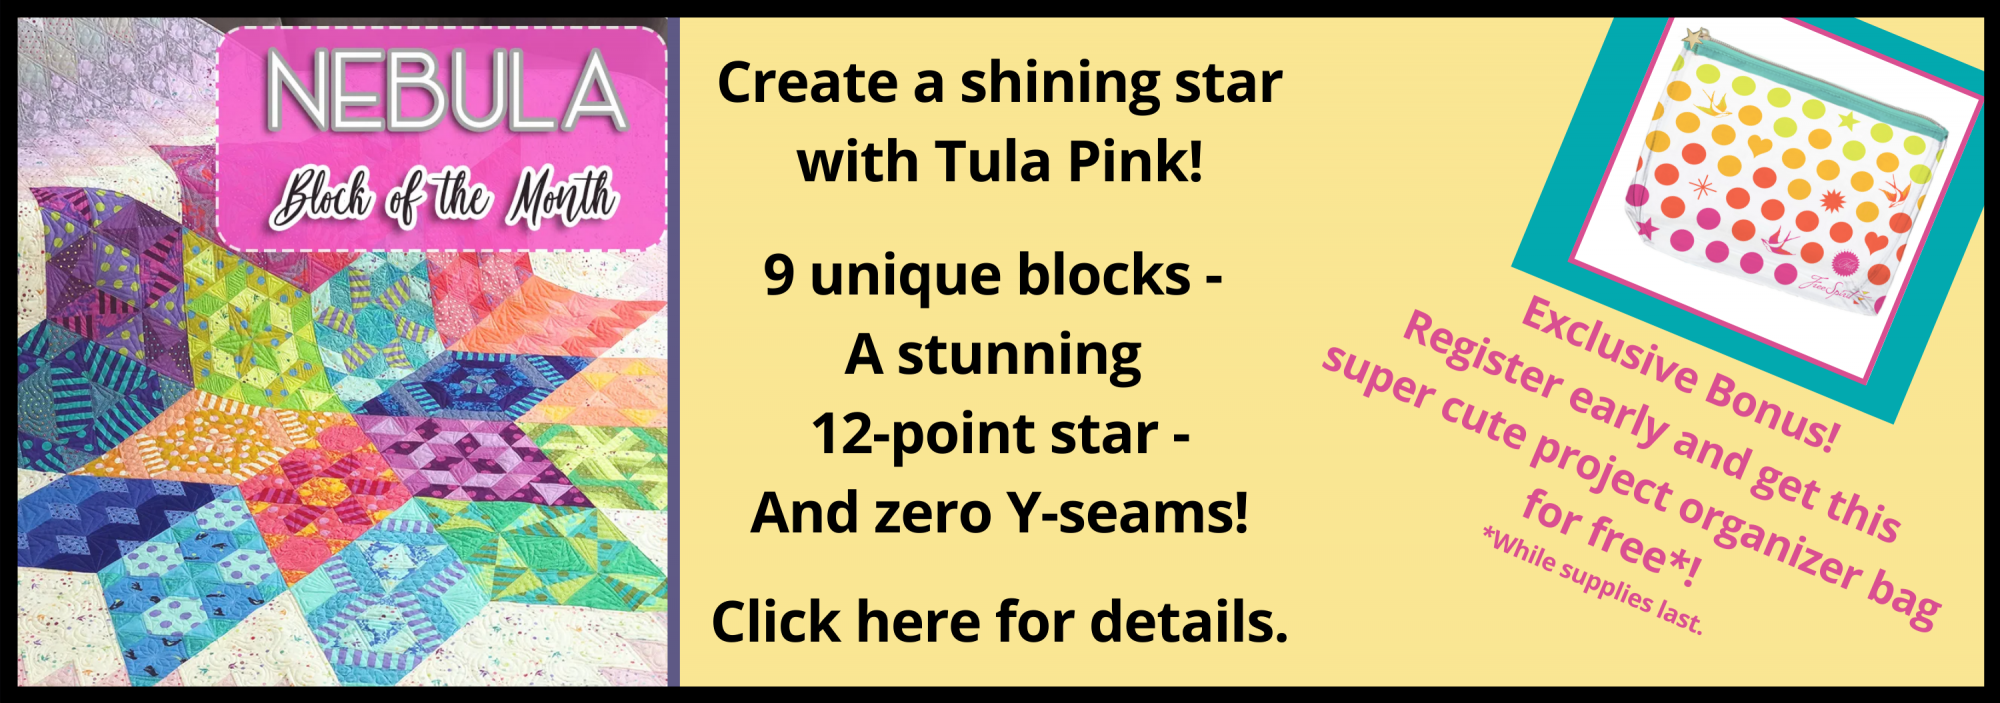 bee's quilt shop st augustine tula pink block of the month bom nebula